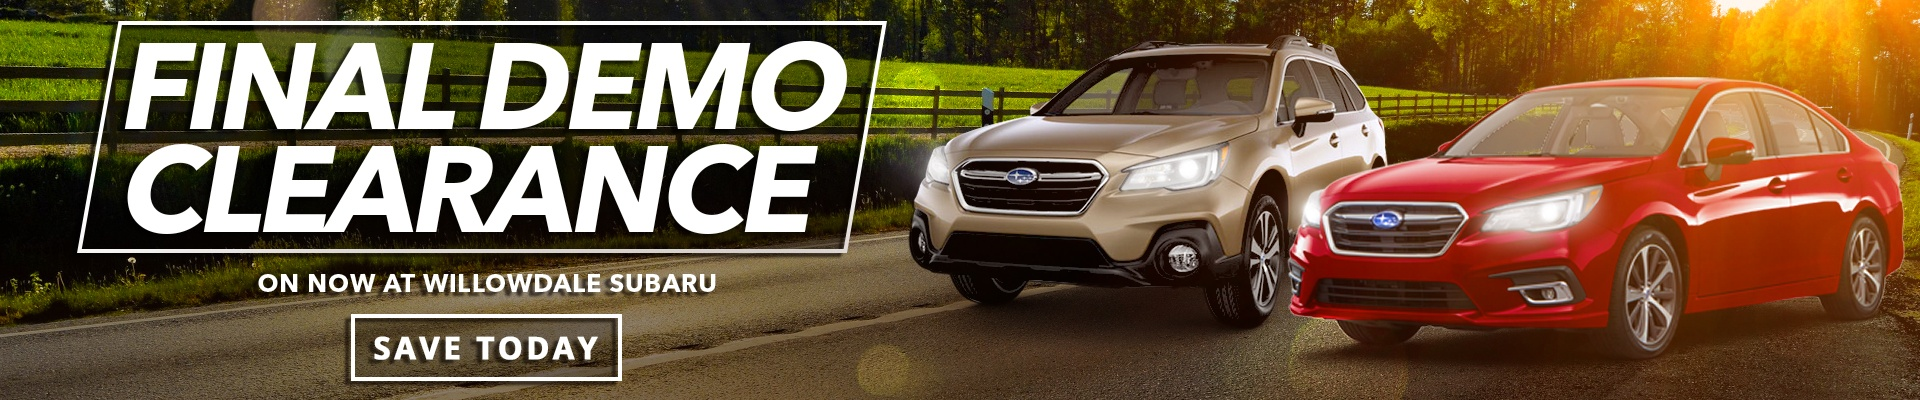 Demo Clearance at Willowdale Subaru